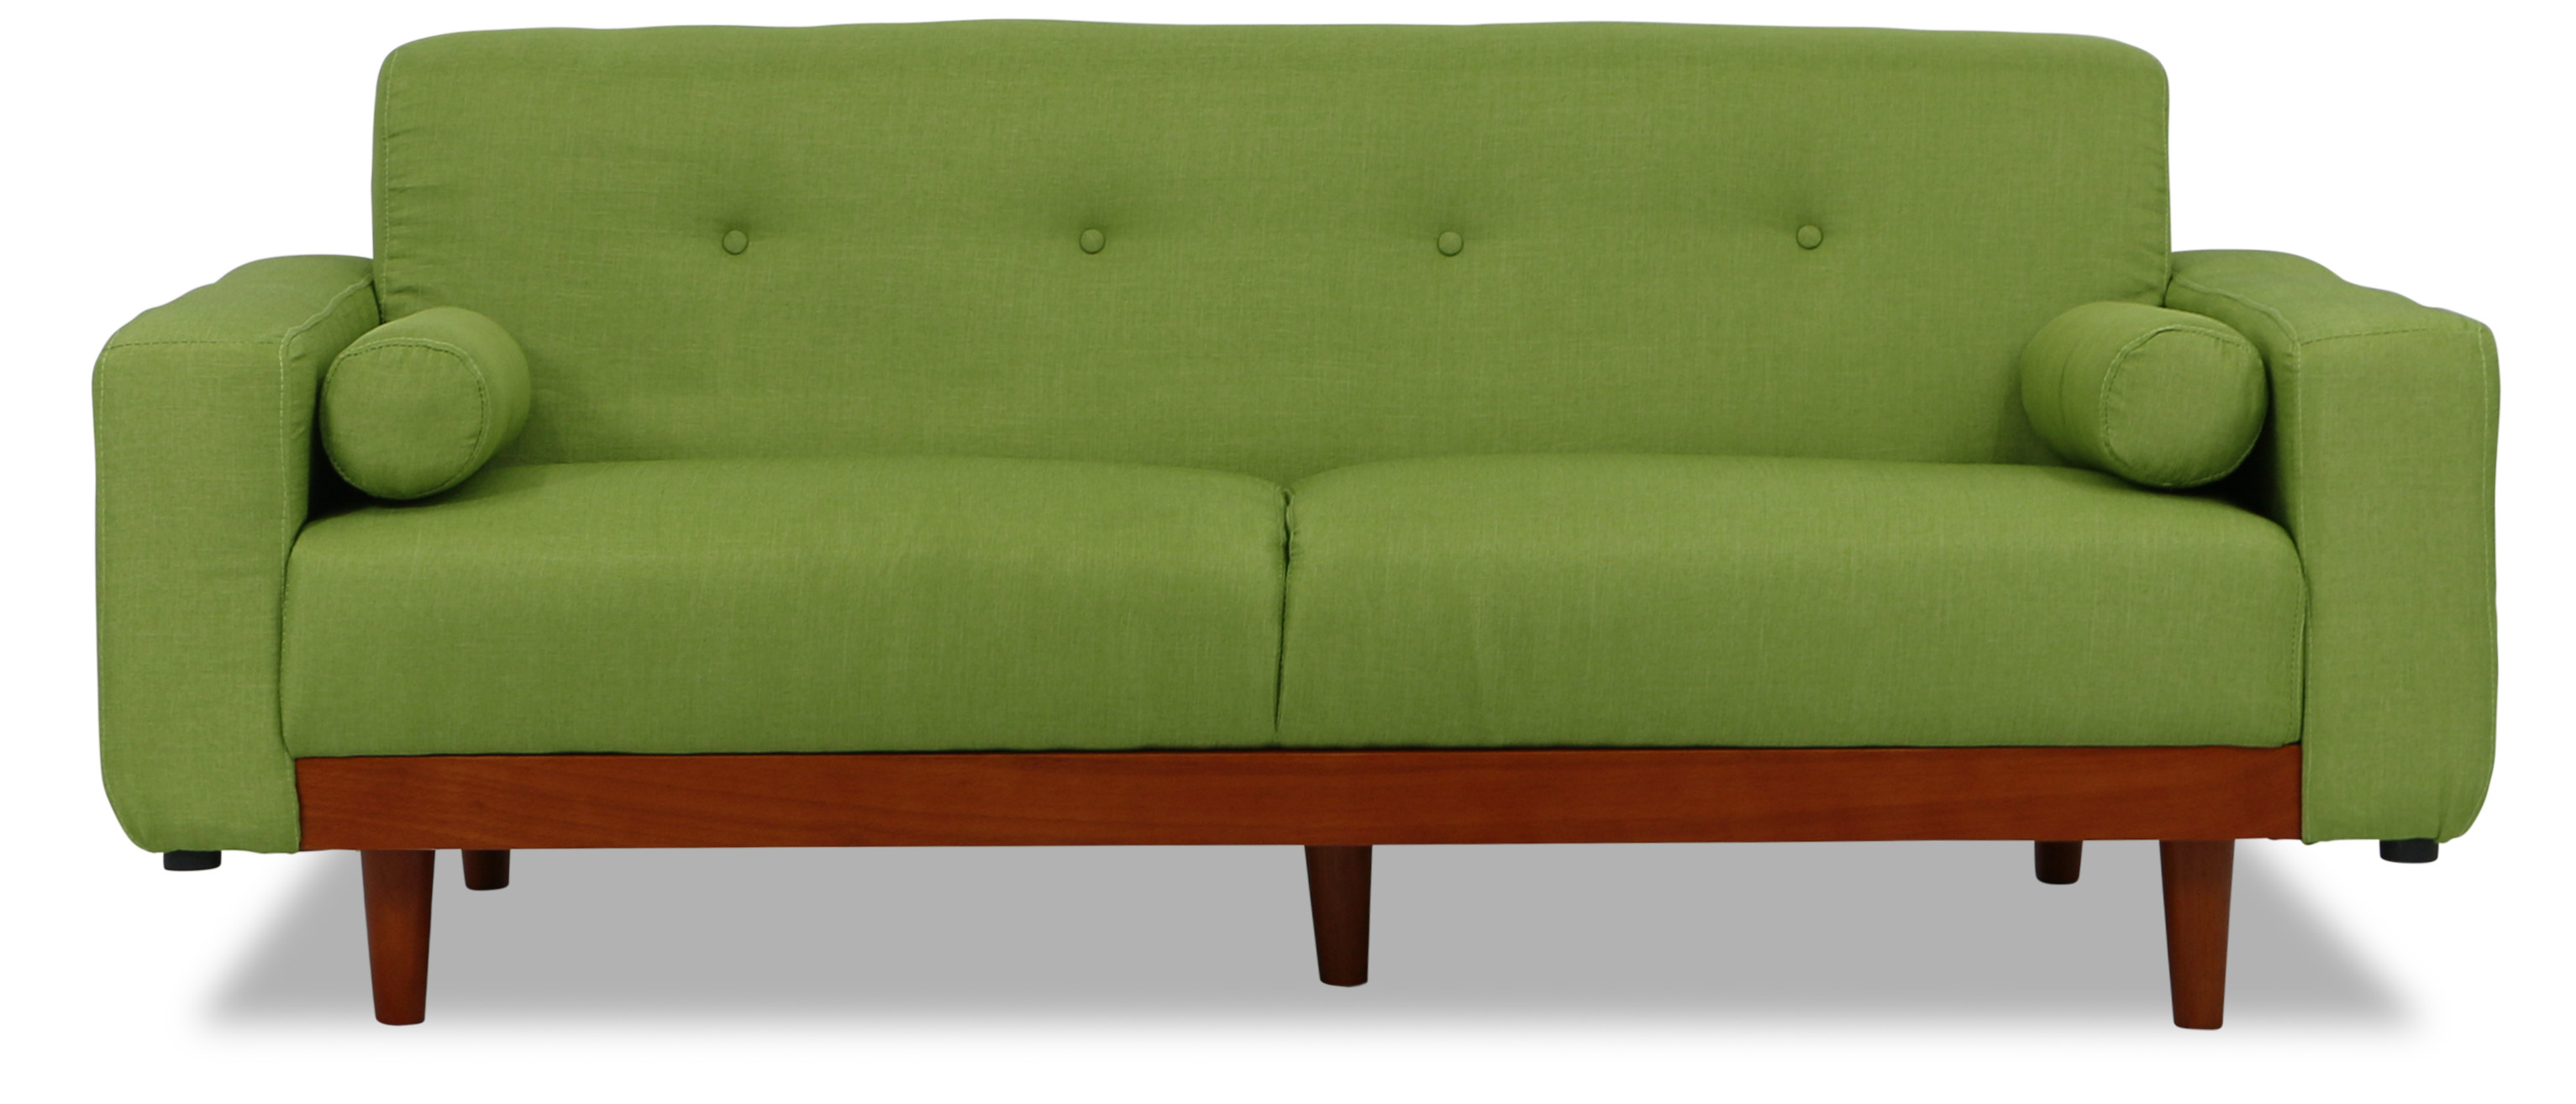 Miyako 3 Seater Sofa Green Furniture Home Decor Fortytwo